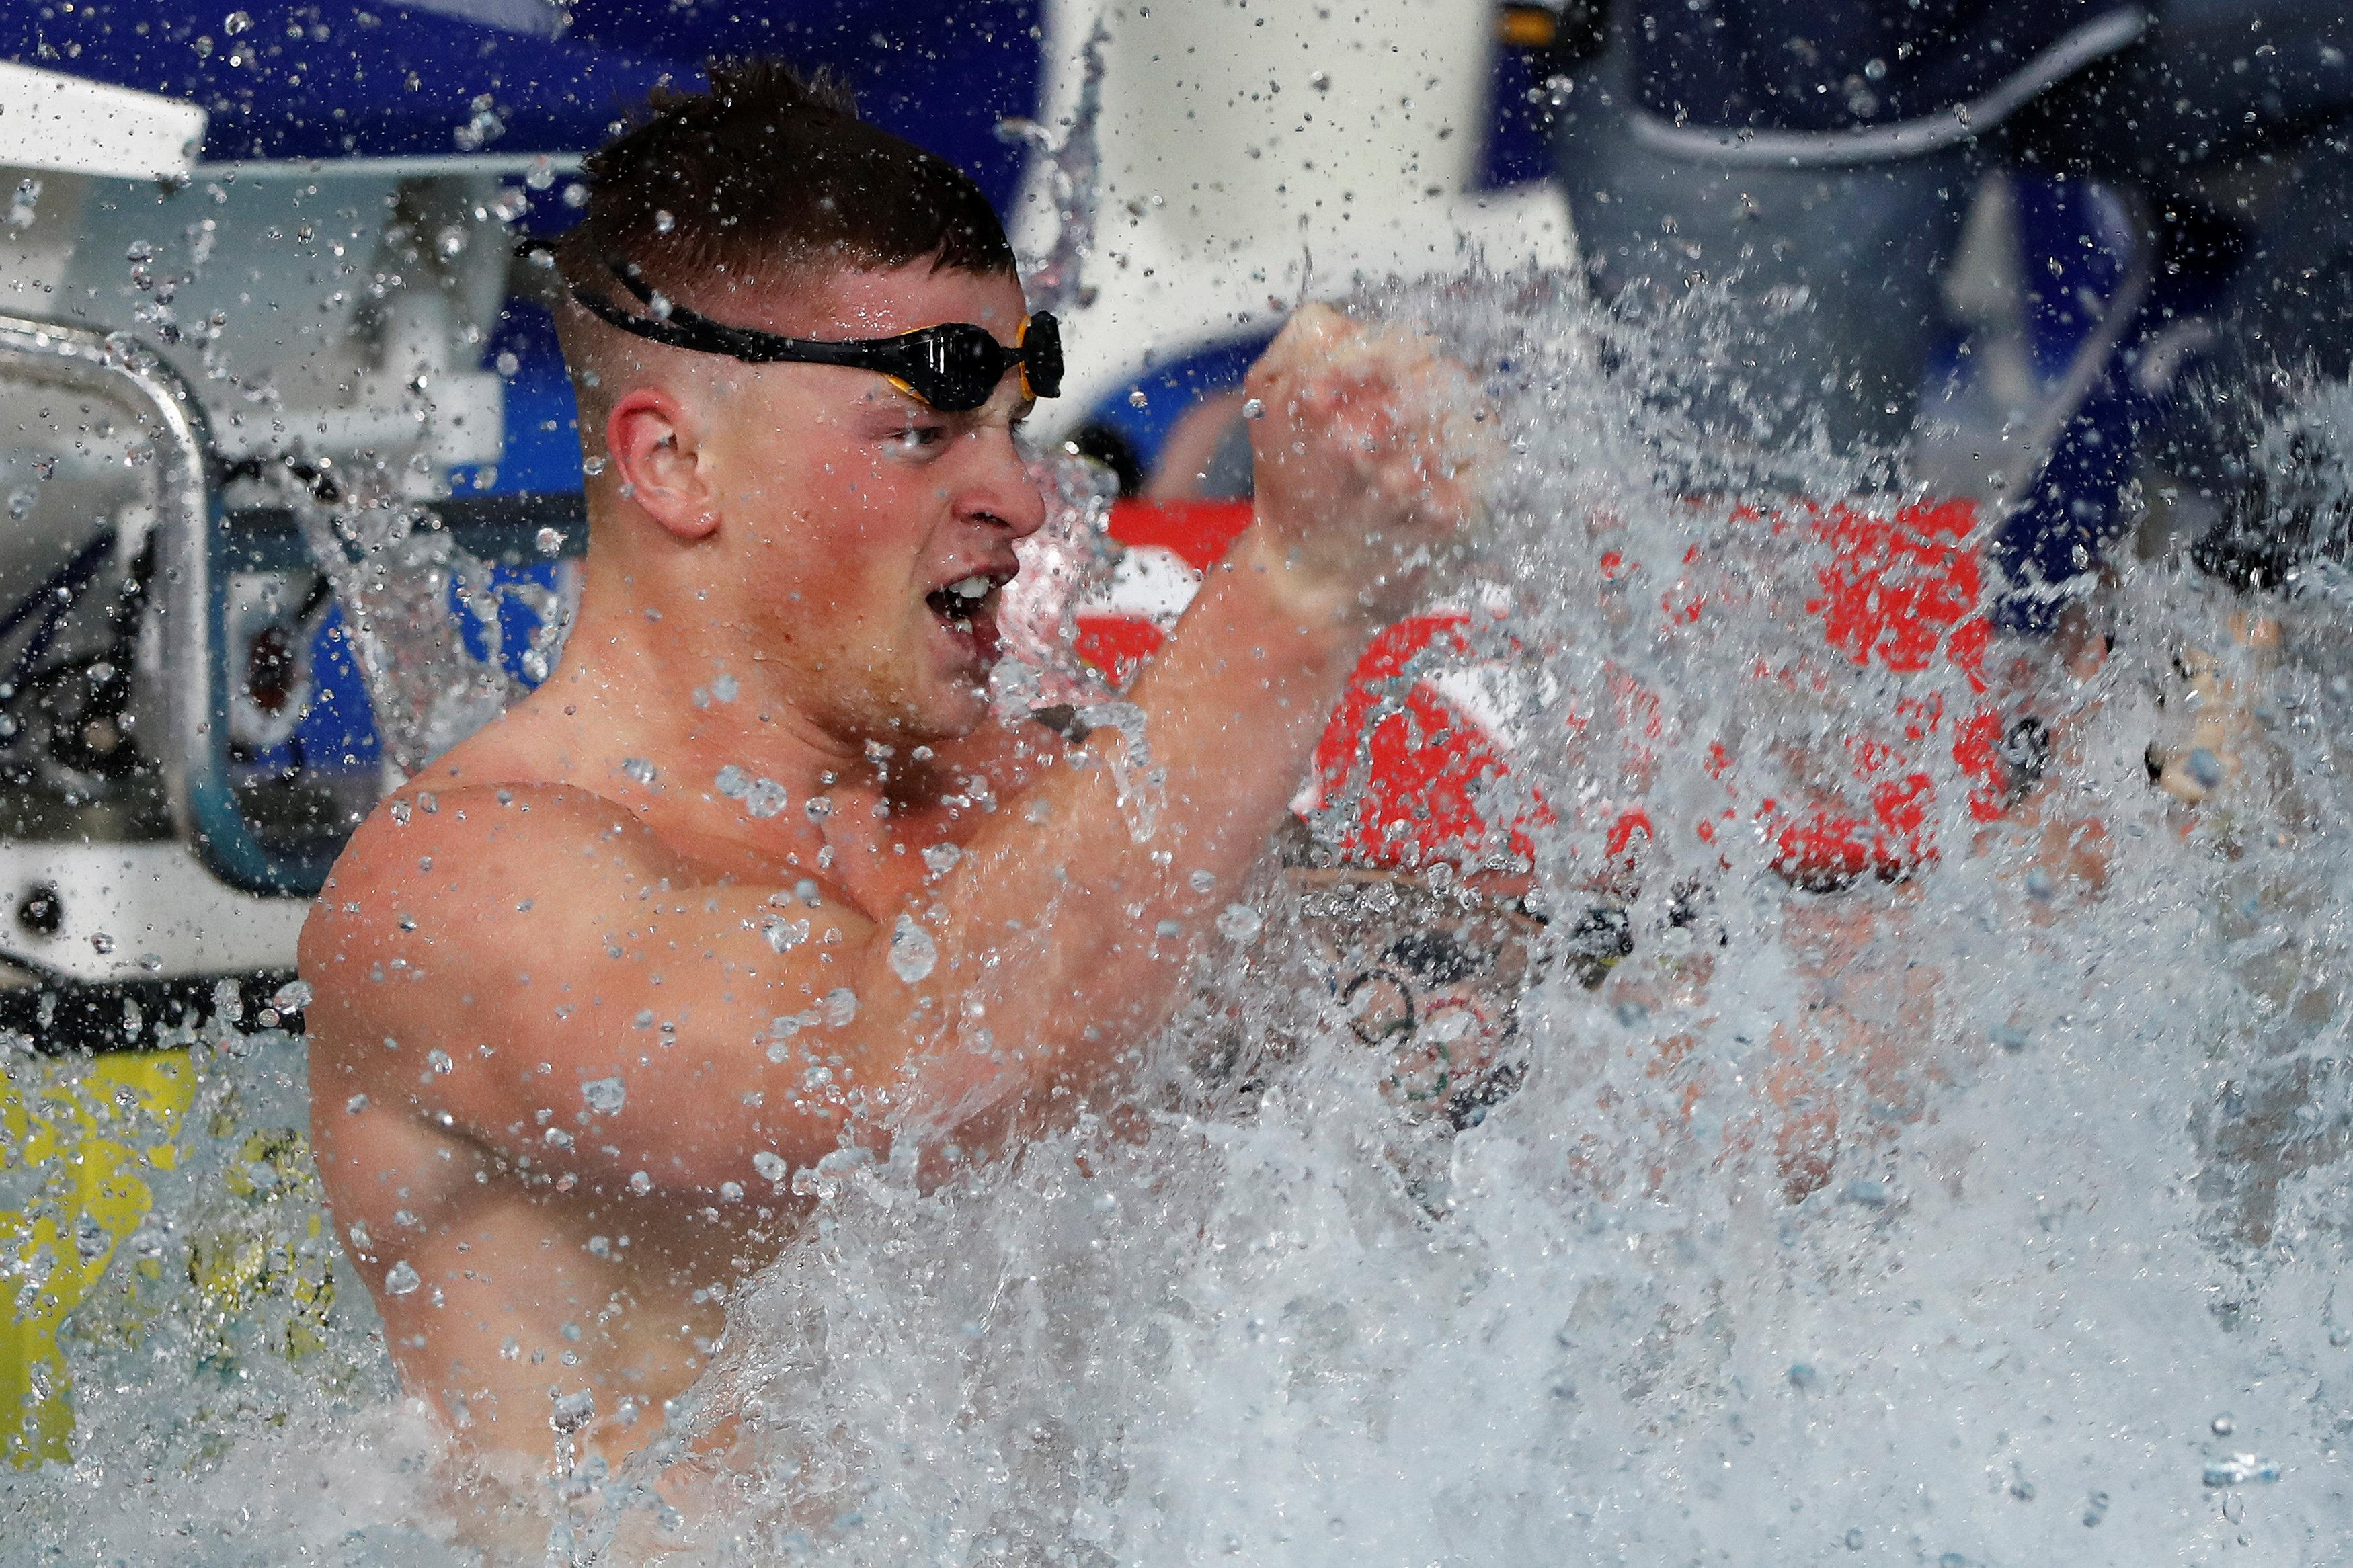 Peaty will be hoping for another win in the 50m breaststroke